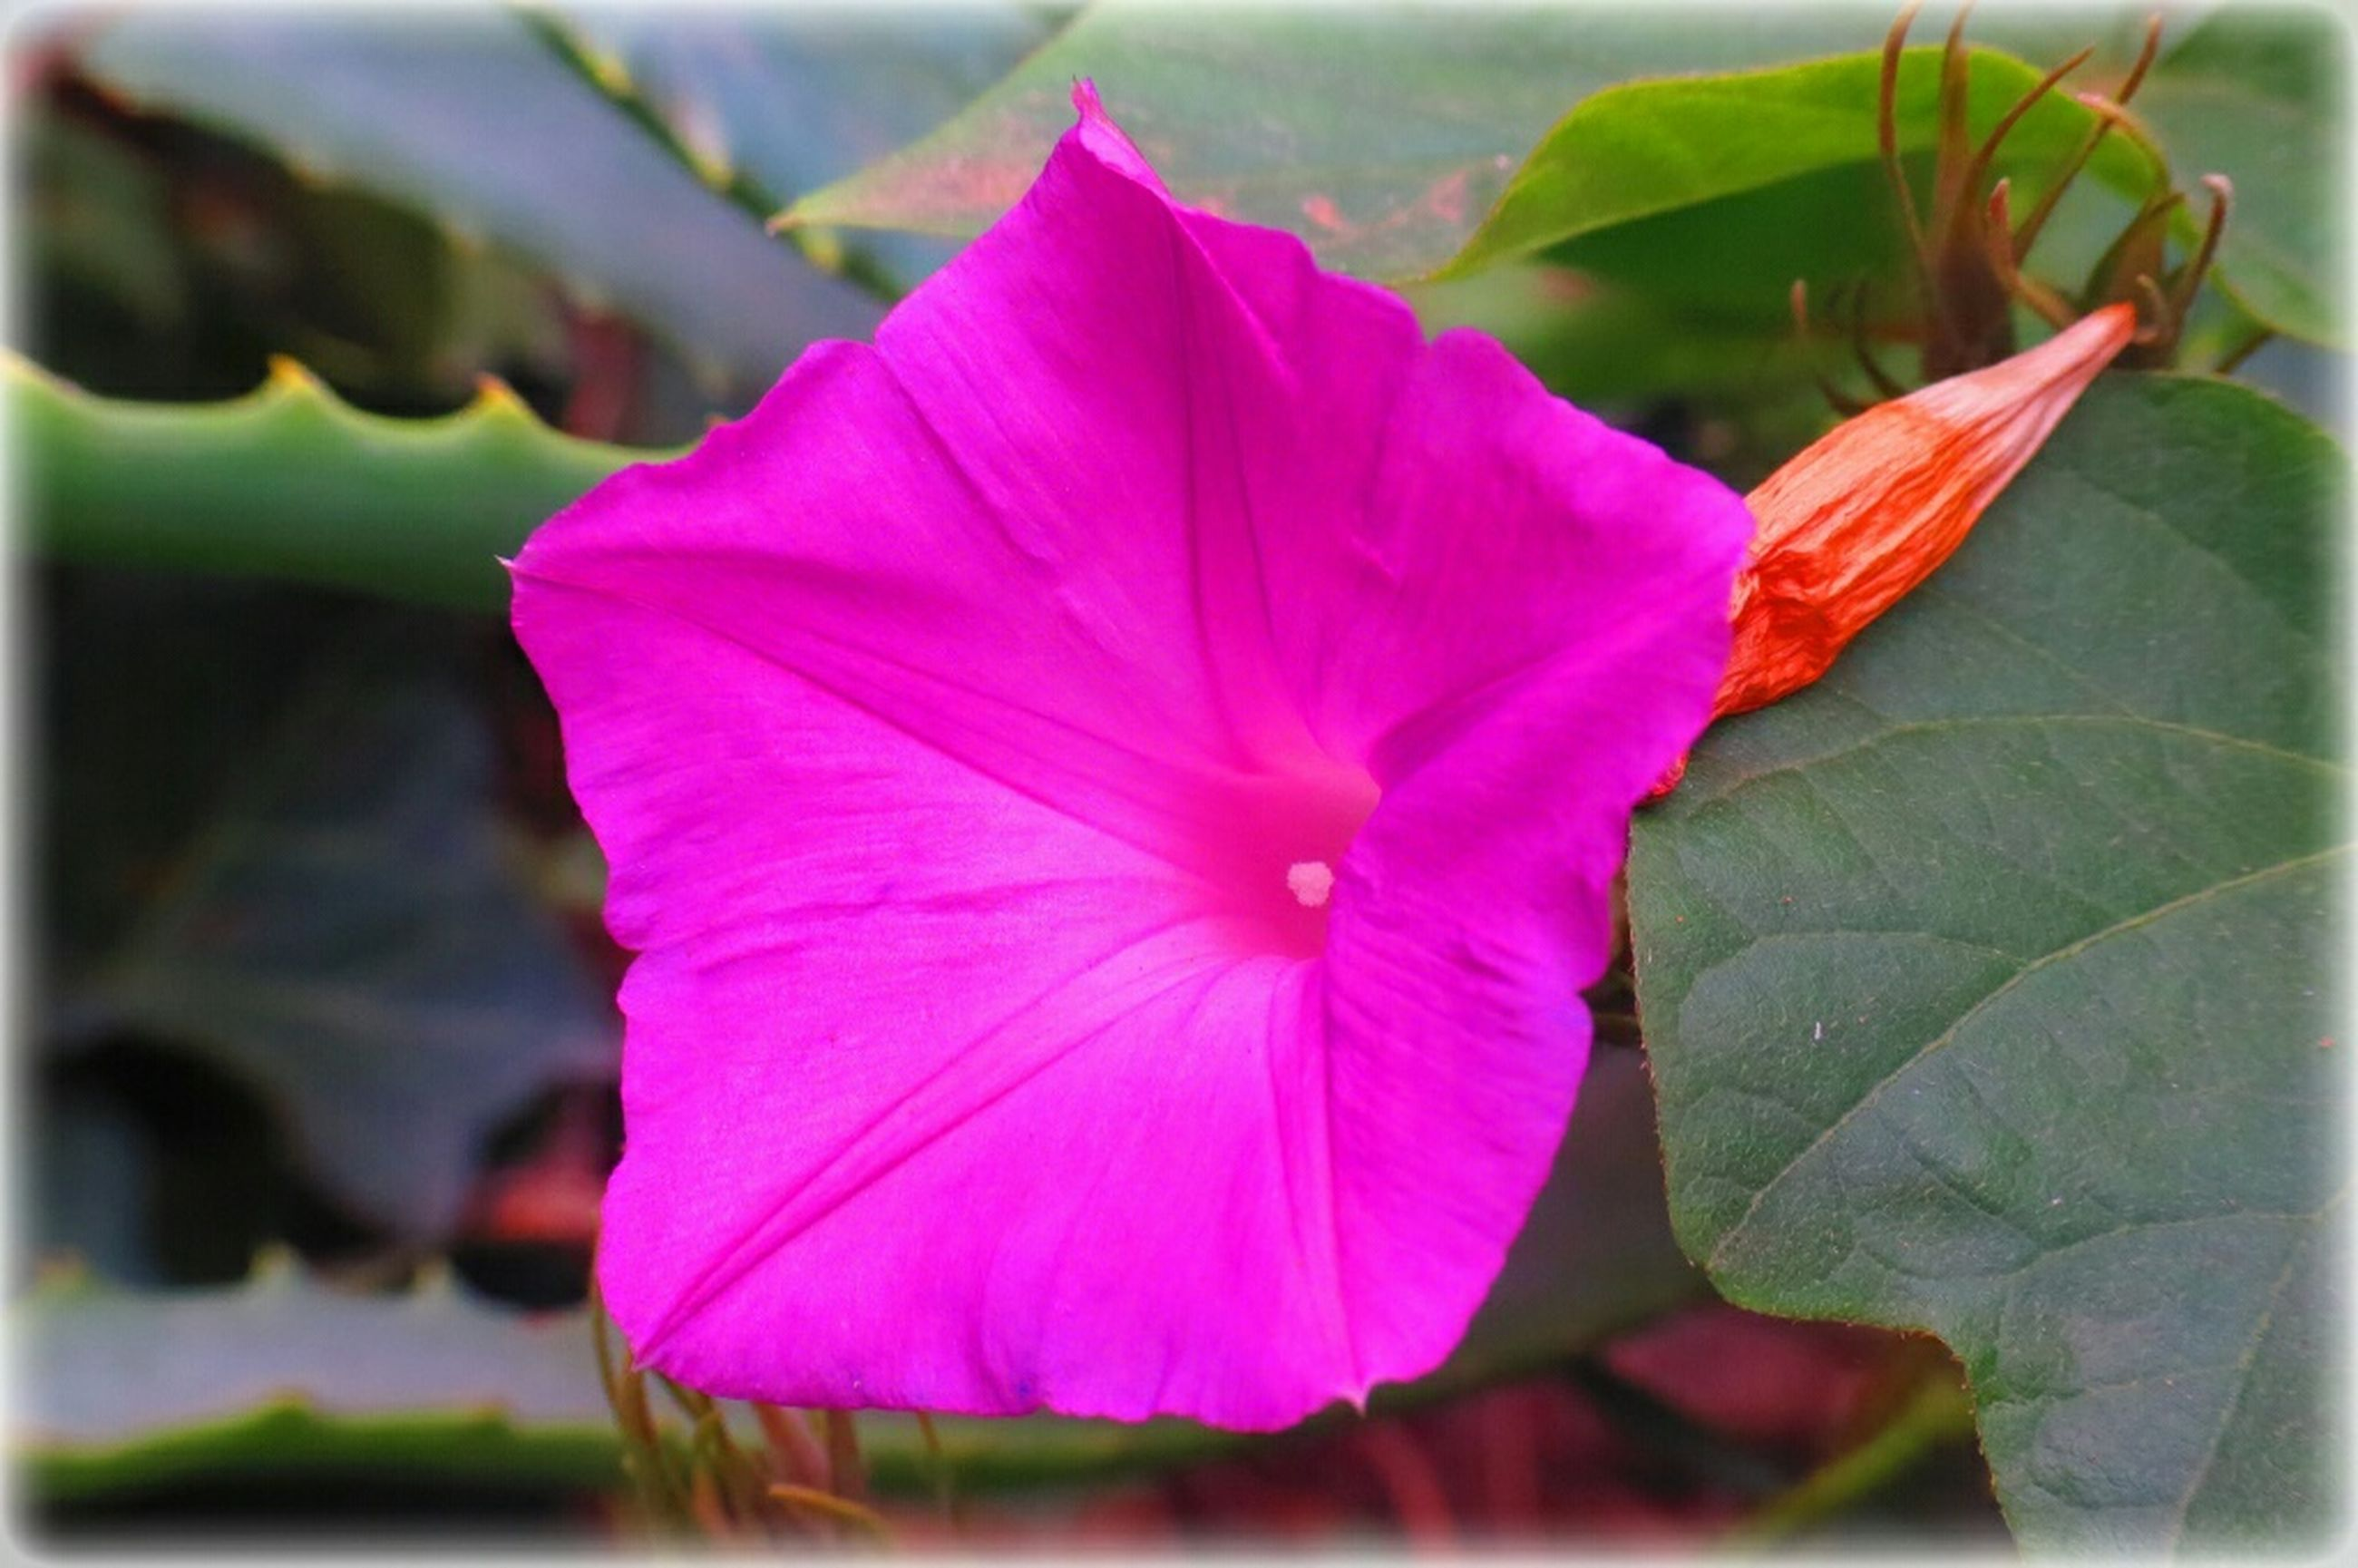 flower, petal, freshness, flower head, fragility, pink color, close-up, growth, beauty in nature, single flower, stamen, focus on foreground, transfer print, blooming, pollen, nature, auto post production filter, blossom, hibiscus, in bloom